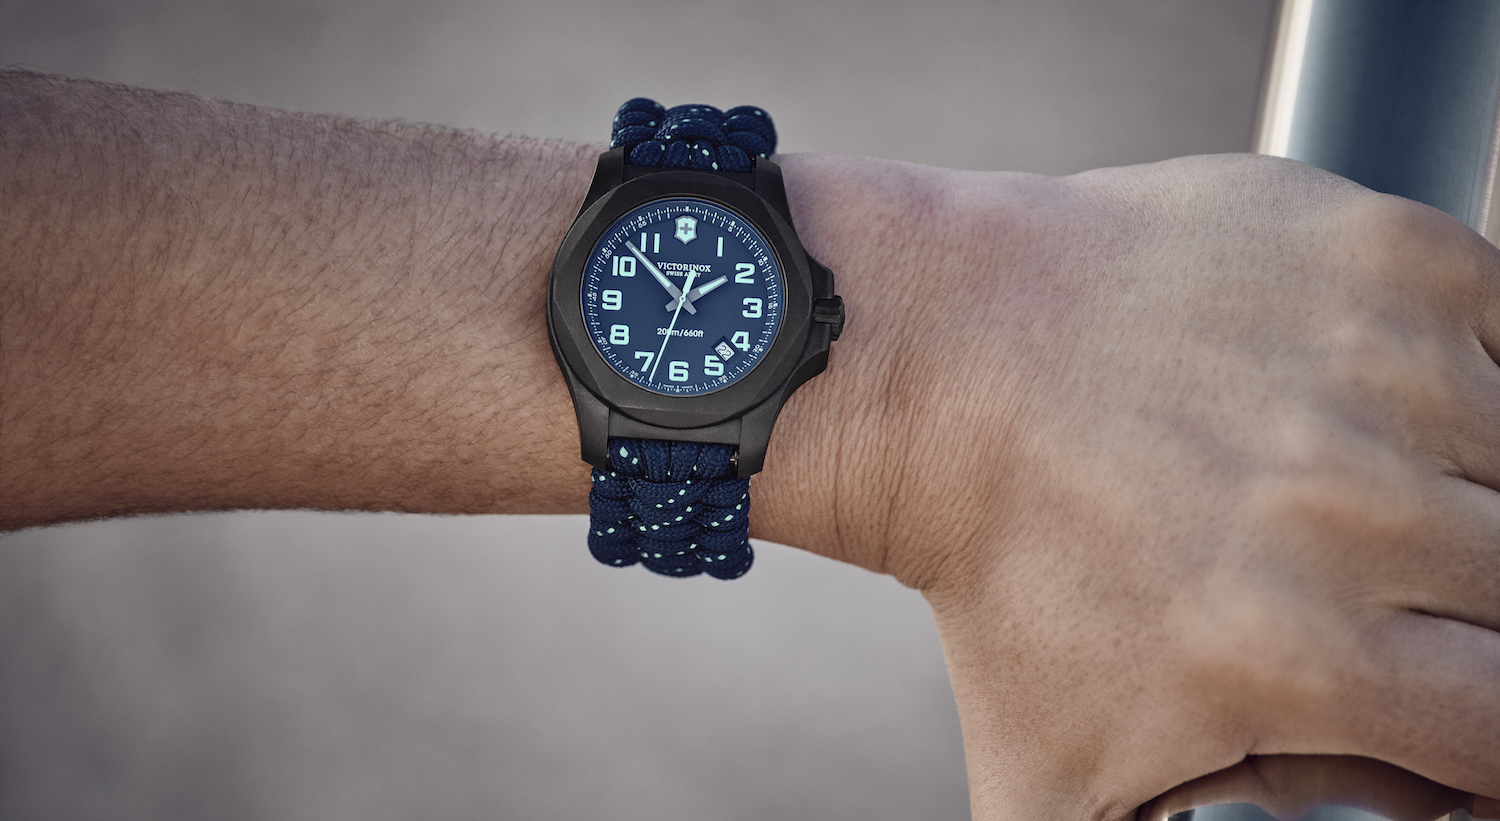 Victorinox and the challenges of the affordable watch